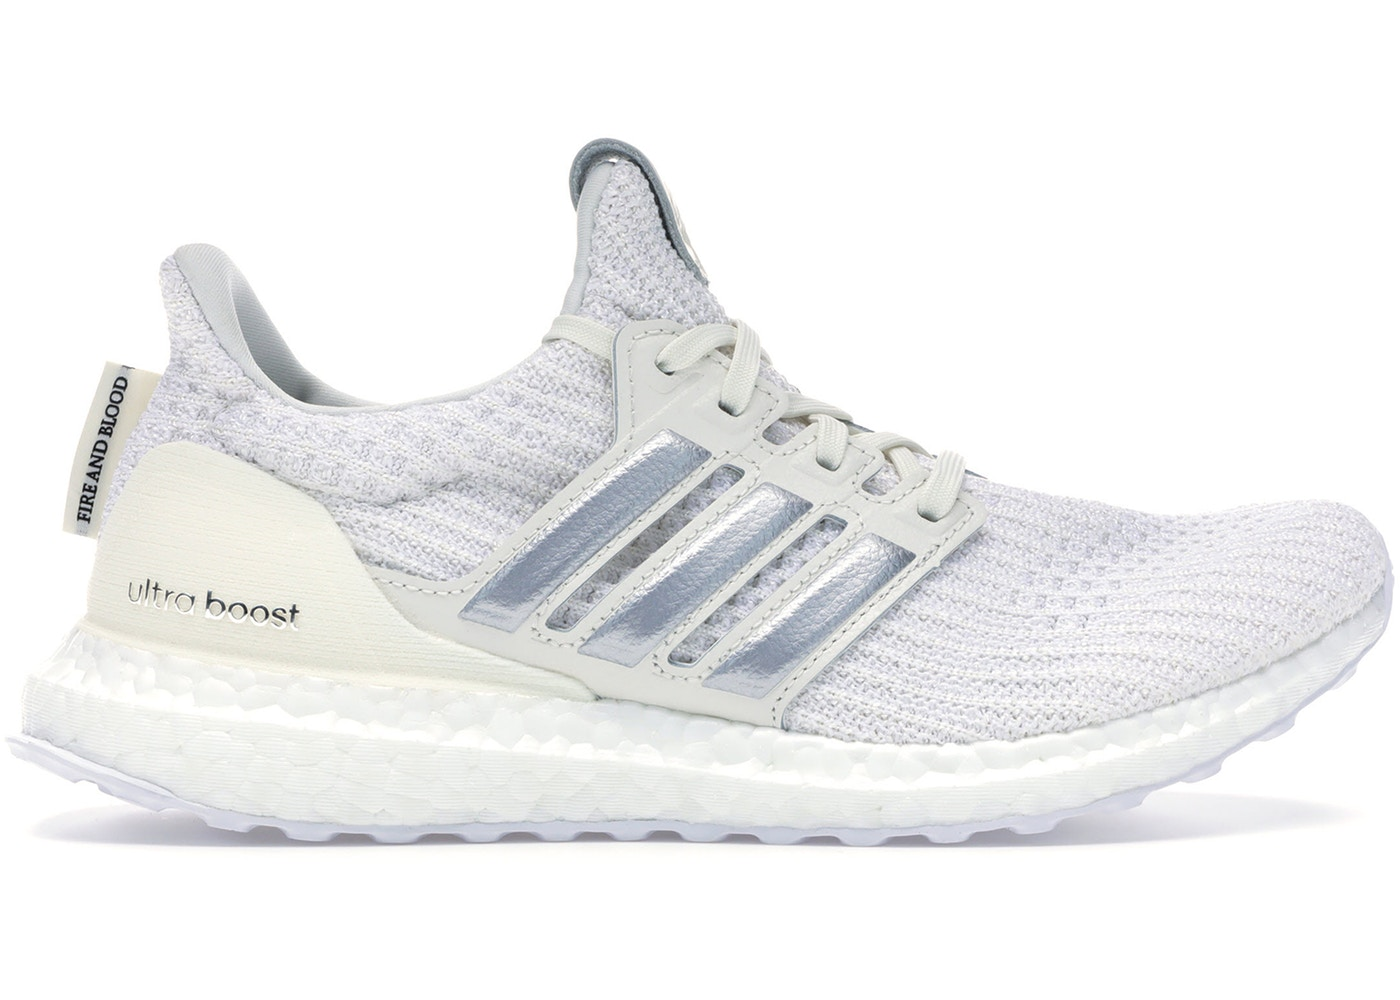 """Cooperativa Semicírculo natural  On Sale: Game of Thrones x adidas UltraBOOST 4.0 W """"House Targaryen"""" —  Sneaker Shouts"""